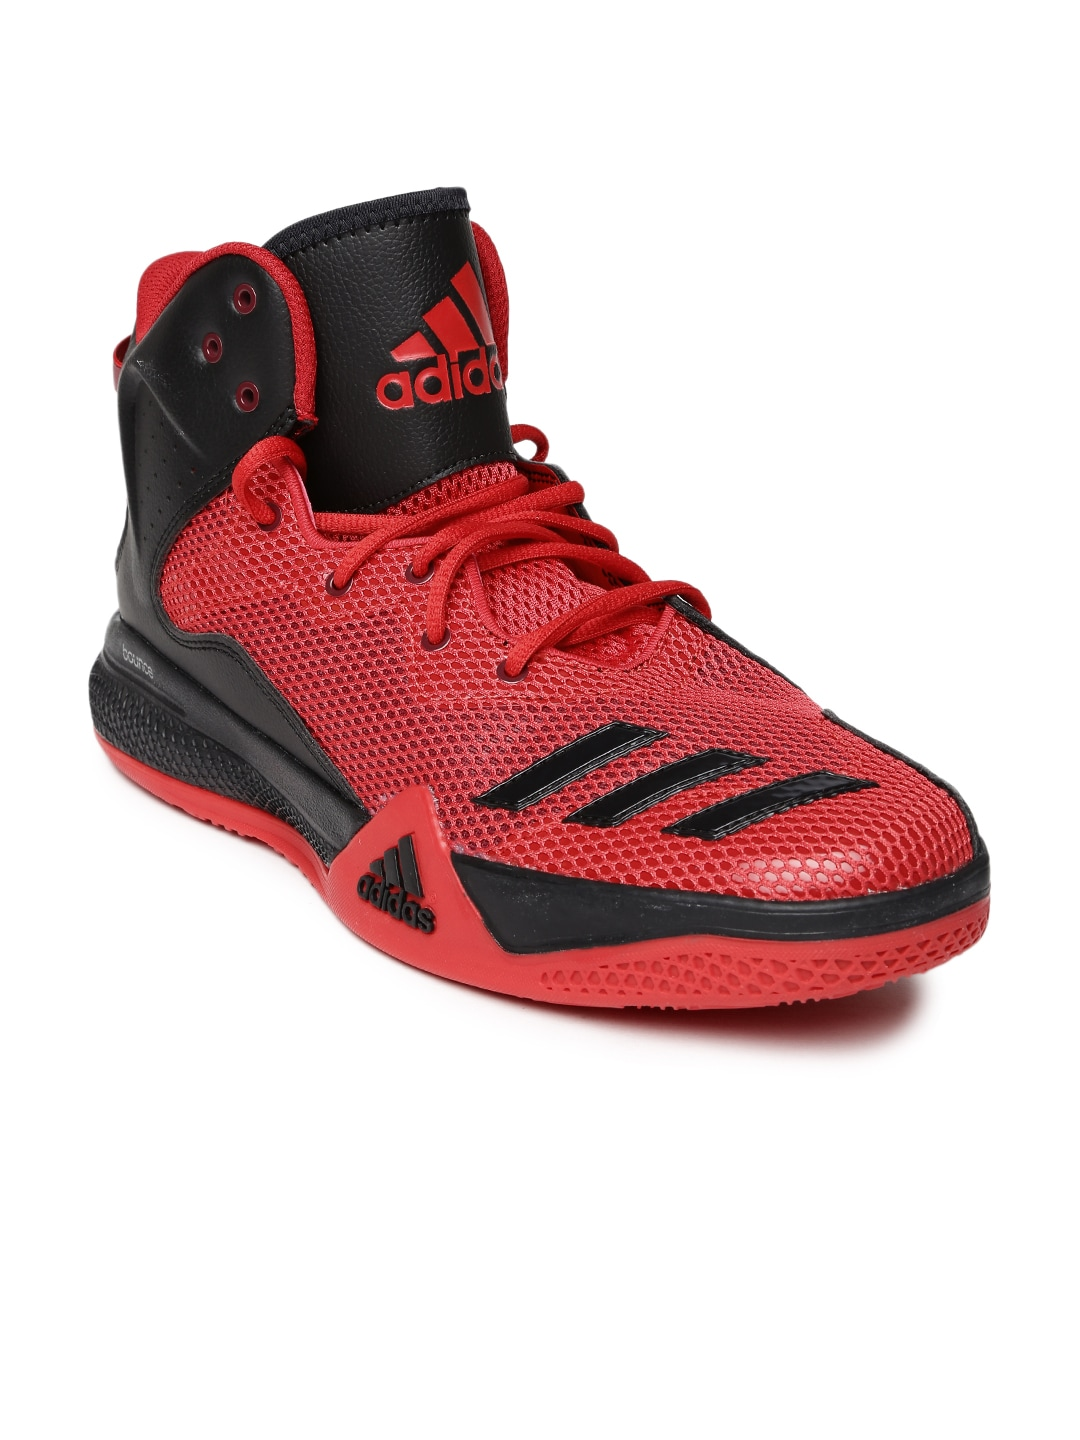 88c2a4ed5b2795 Adidas aq7755 Men Red Dual Threat Basketball Shoes - Best Price in ...